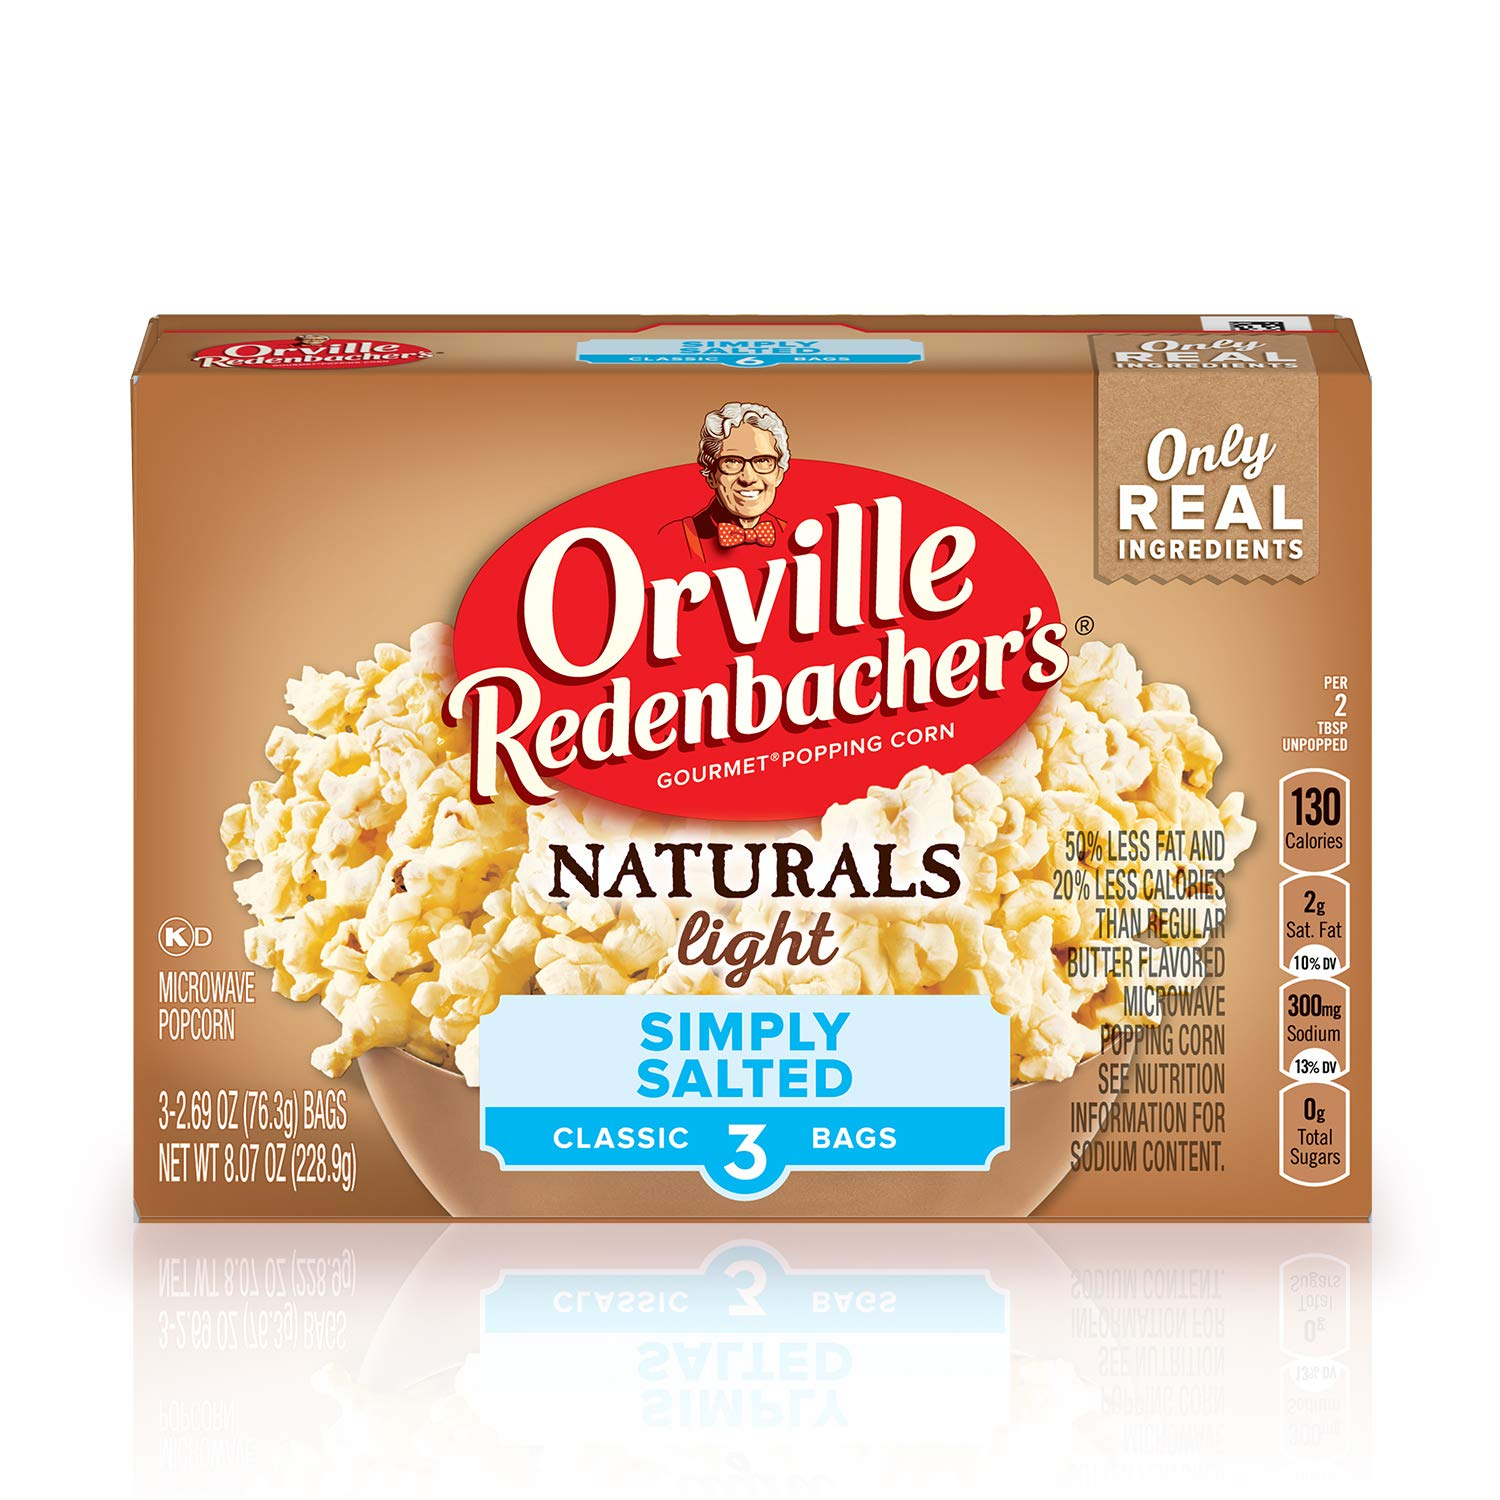 Orville Redenbacher's Naturals Light Simply Salted Popcorn, Classic Bag, 3-Count